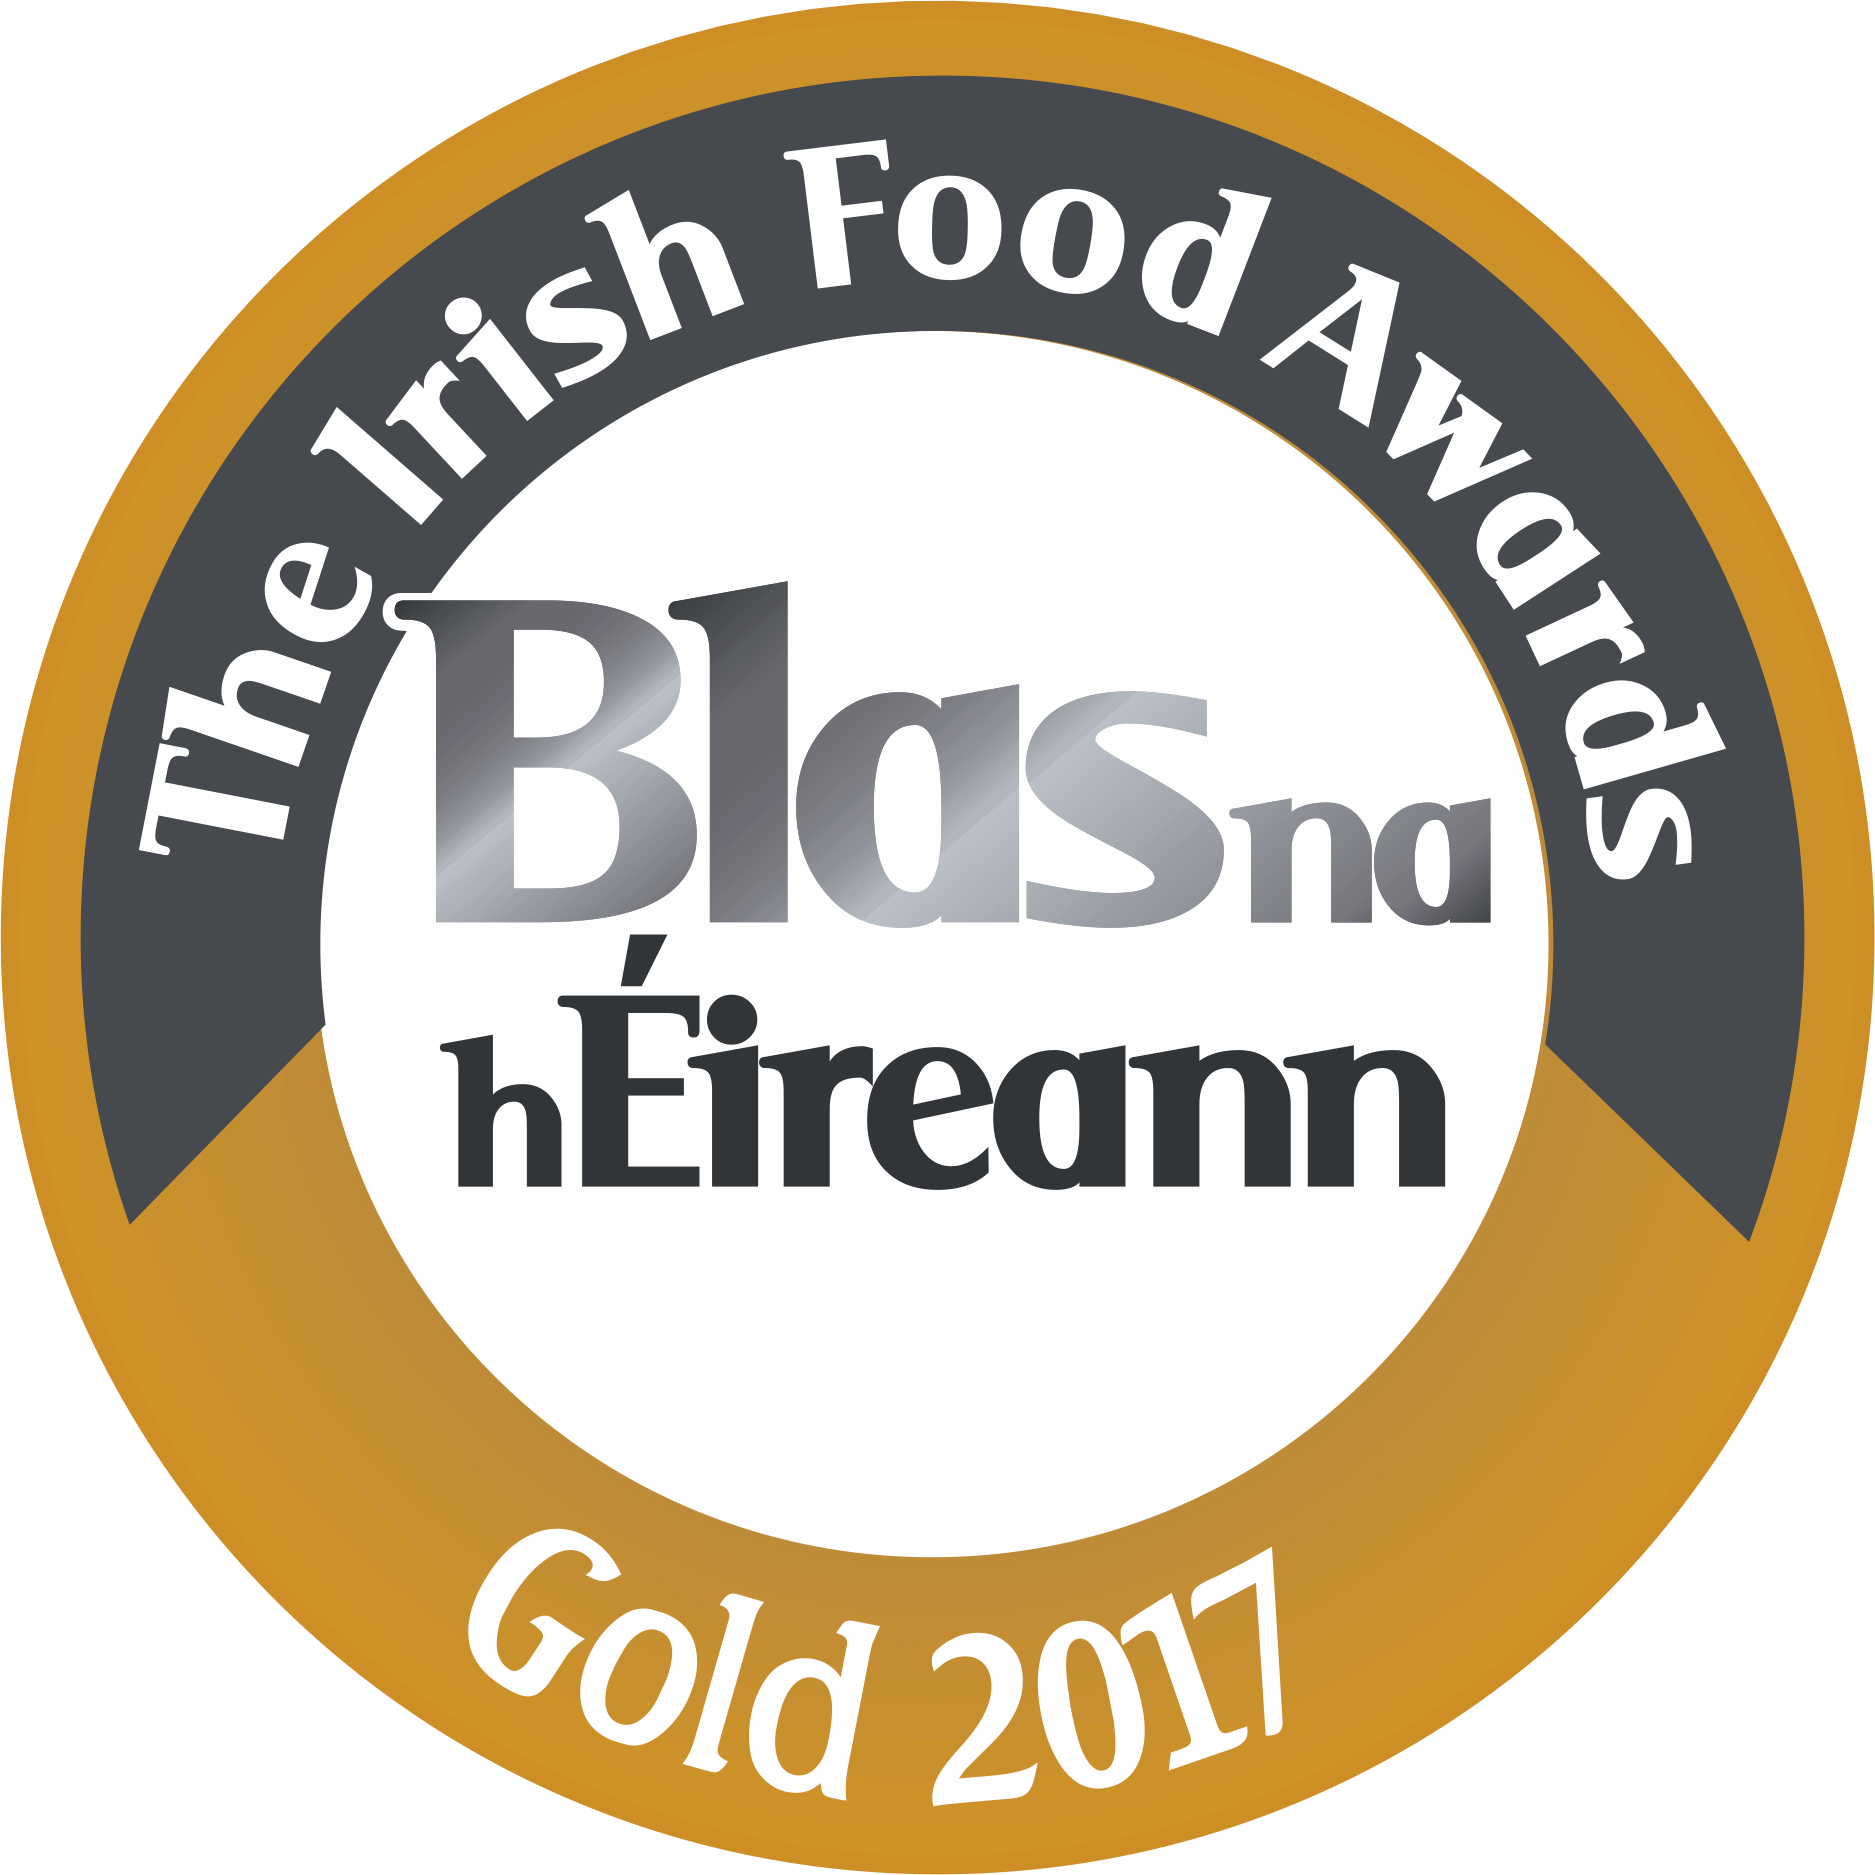 Keoghs crisps The irish food awards blas na hEireann